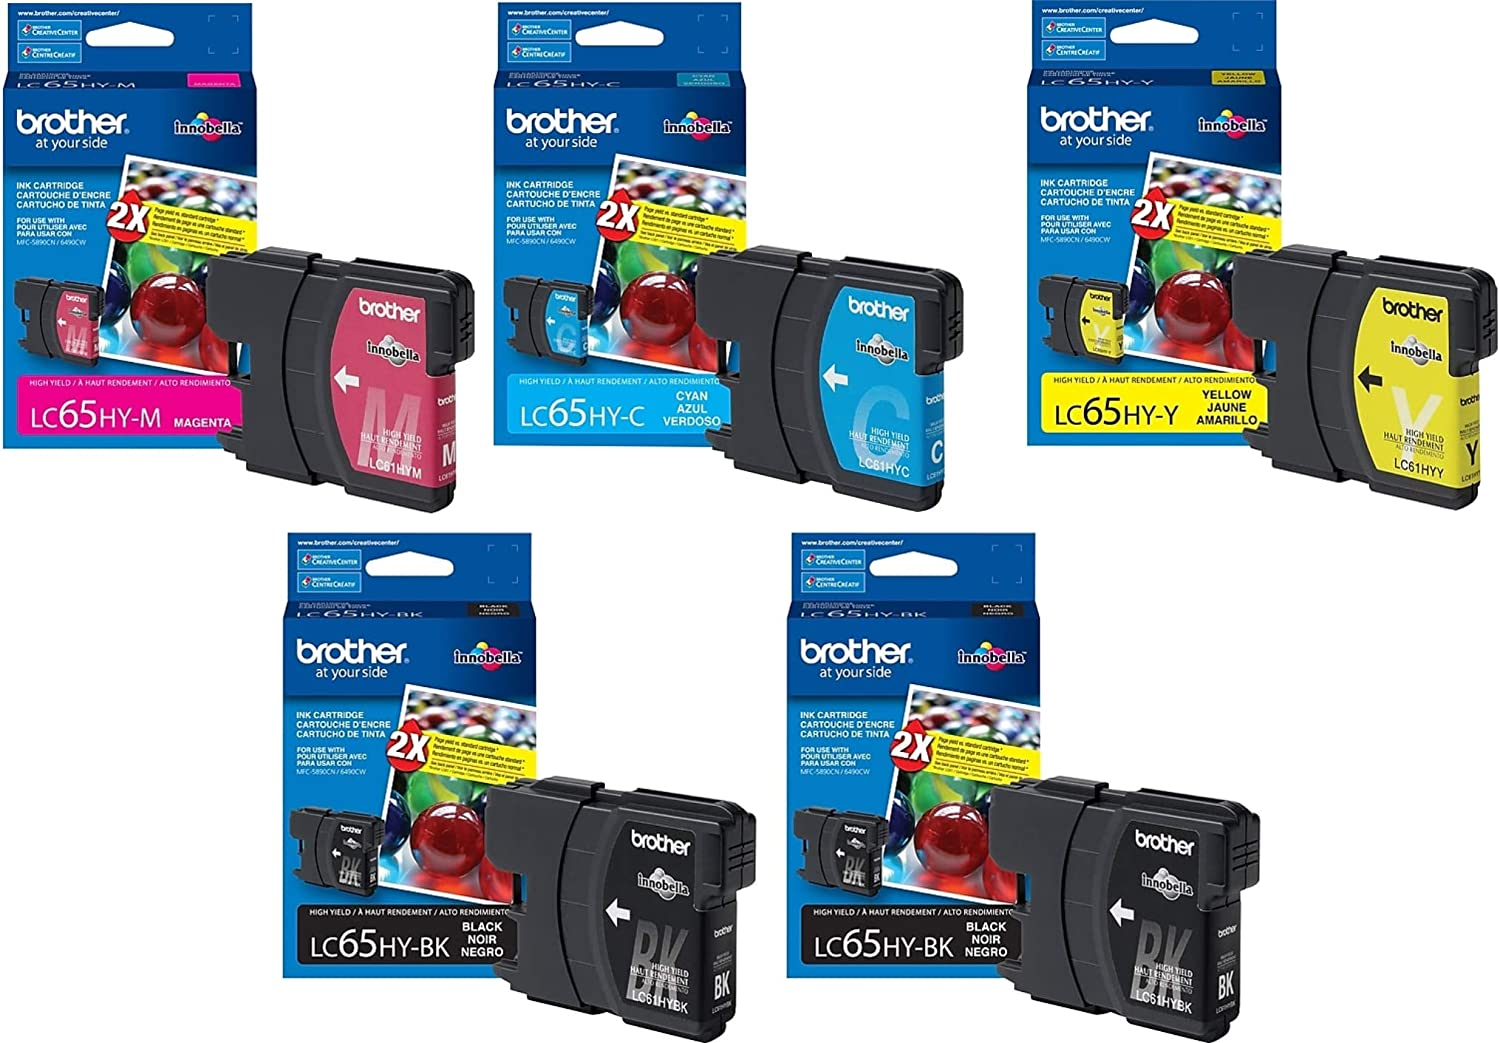 Magenta, 3 Pack MS Imaging Supply Compatible Inkjet Cartridge Replacement for Brother LC65M